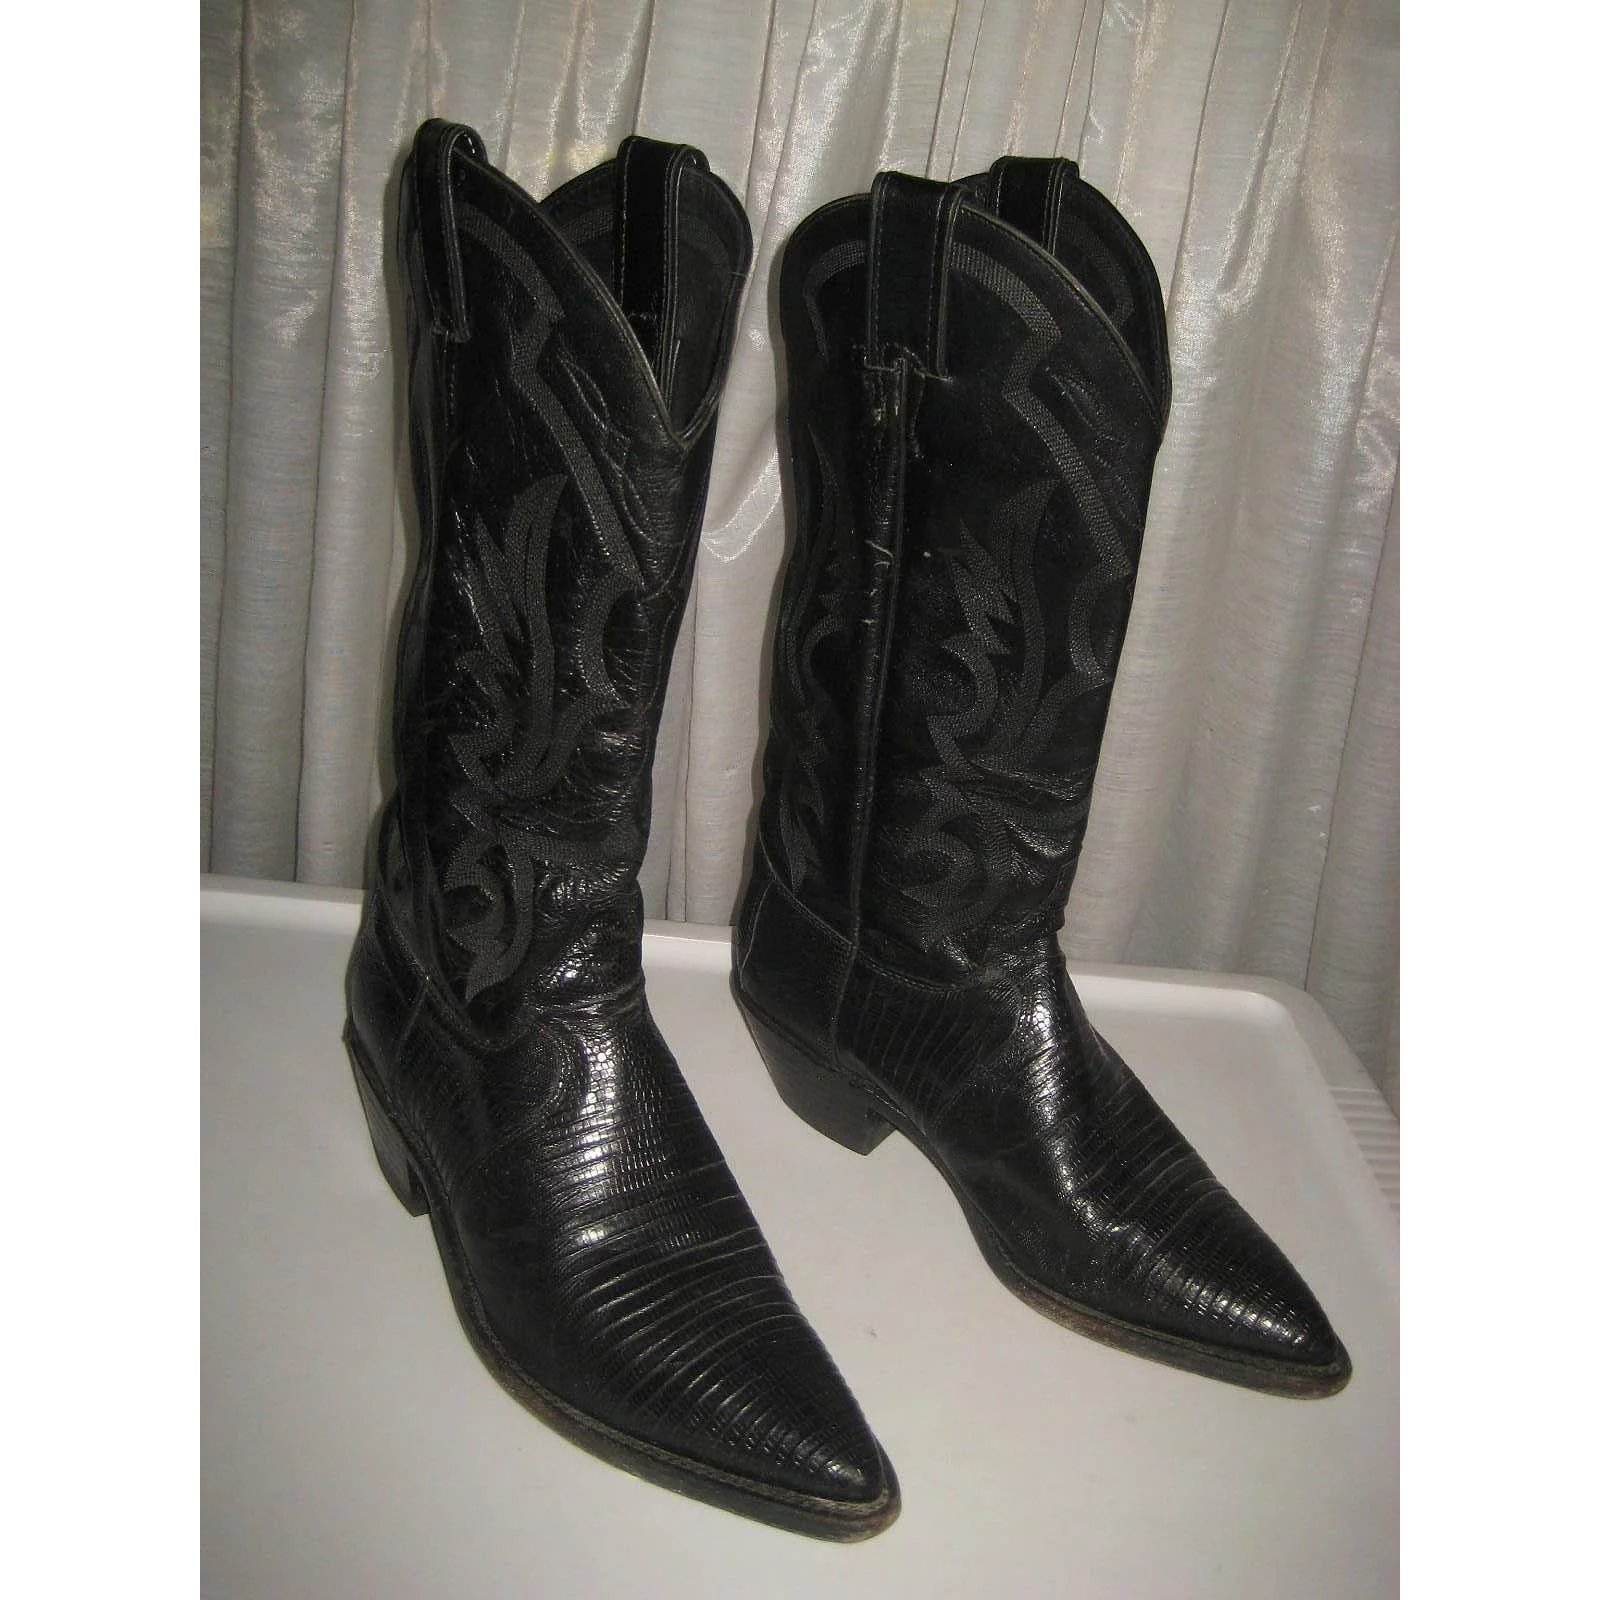 8c0720a4449d Used Justin Women s Cowboy Boots-Black Lizard   Leather-8 1 2 B   Victorian  Dreams